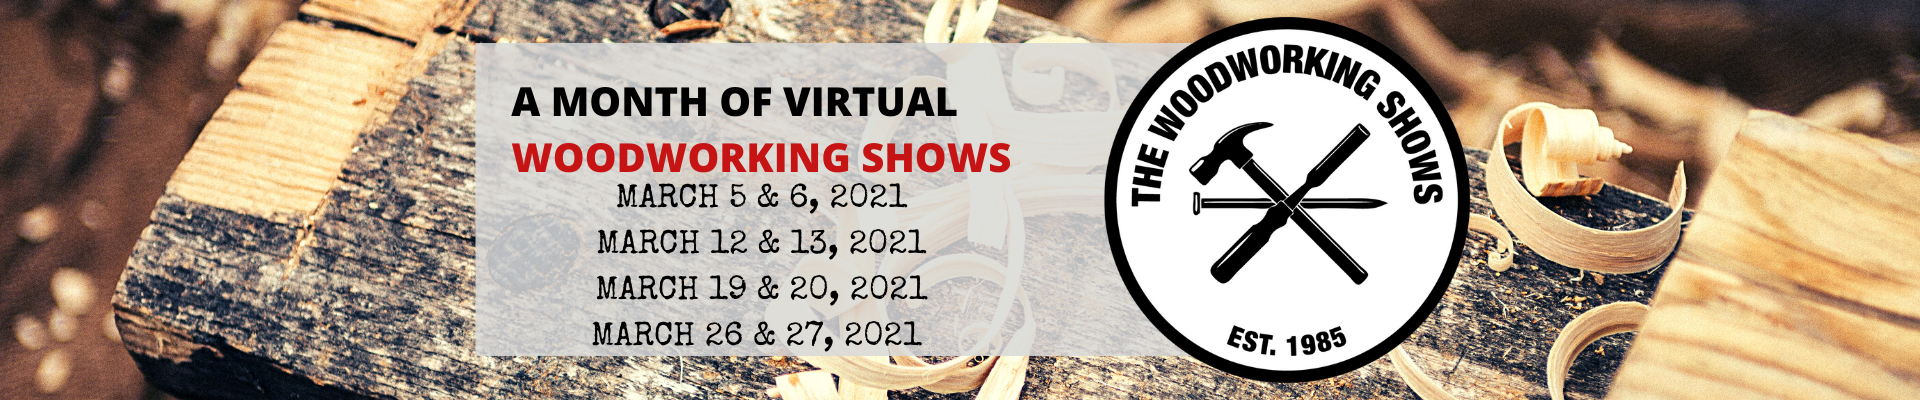 The Month of Woodworking Shows - All Seminars